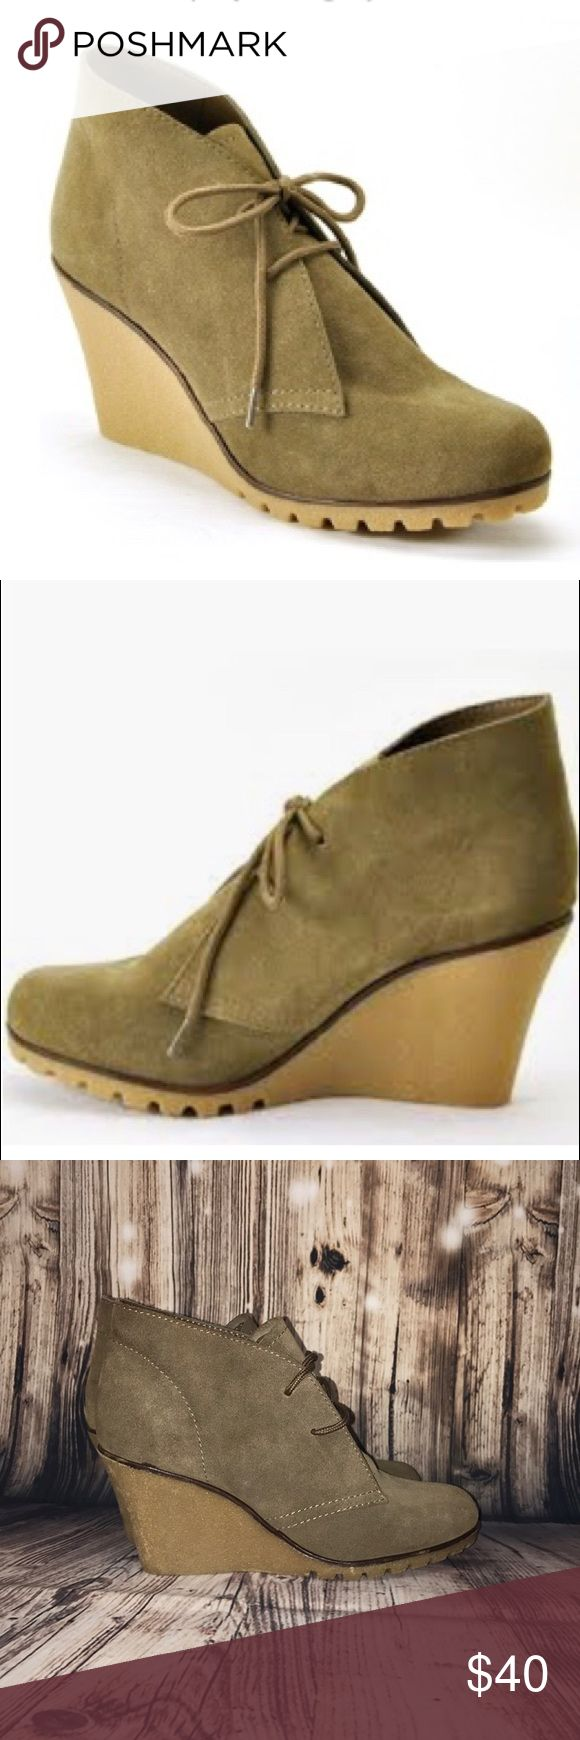 """Kelsi Dagger Fanetta Wedge Booties Kelsi Dagger size 6.5 Fanetta Wedge Booties in Taupe/Olive. Genuine leather suede upper. Round lace up vamp. Crepe rubber soles. 5"""" front wedge height, 3"""" back wedge height. Shaft: 3.5"""". Worn only once briefly! Retail: $99.00 Kelsi Dagger Shoes Ankle Boots & Booties"""